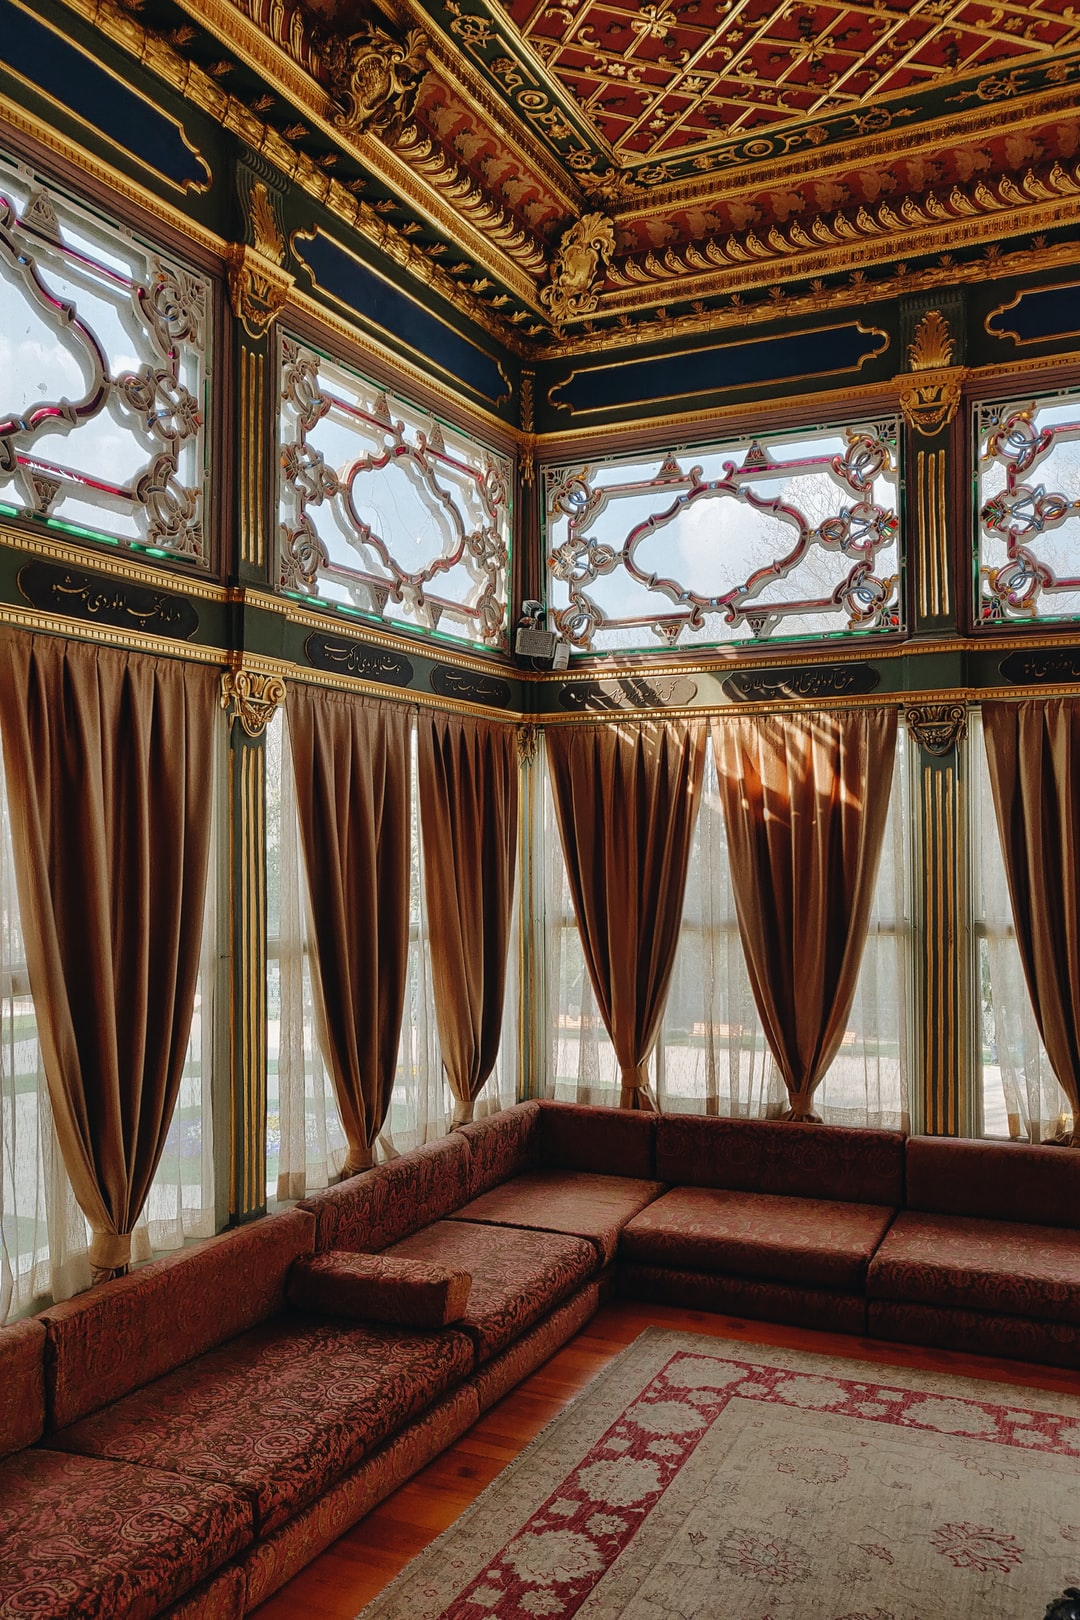 Incredible and meticulously designed ornamentation in one of the many courts and rooms of the Ottoman Topkapı palace in İstanbul, Turkey.